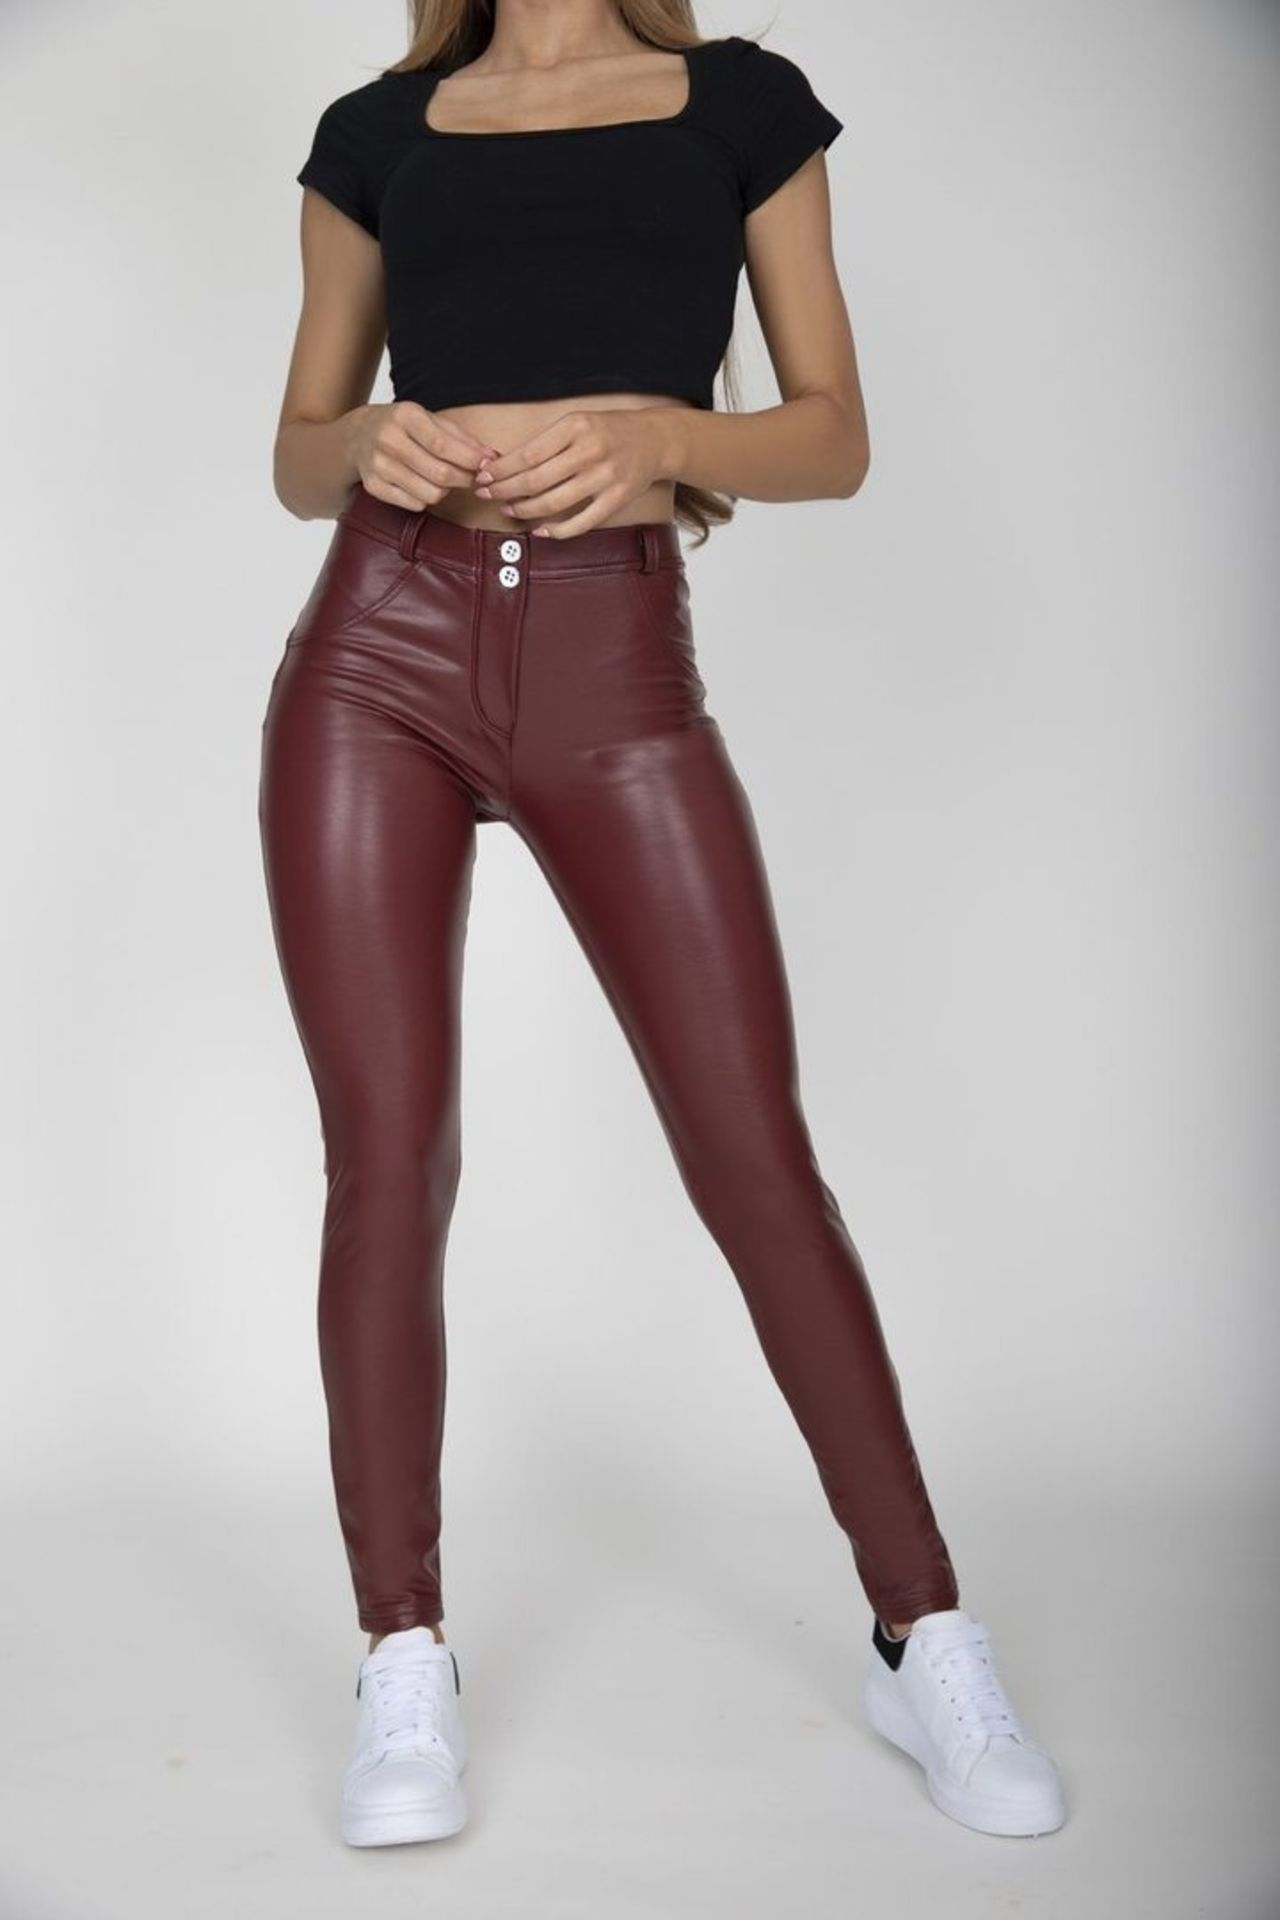 12 X BRAND NEW HUGZ JEANS DESIGNER BRANDED WINE COL FAUX LEATHER PANTS MID WAIST SIZES 8 - S (1) & 6